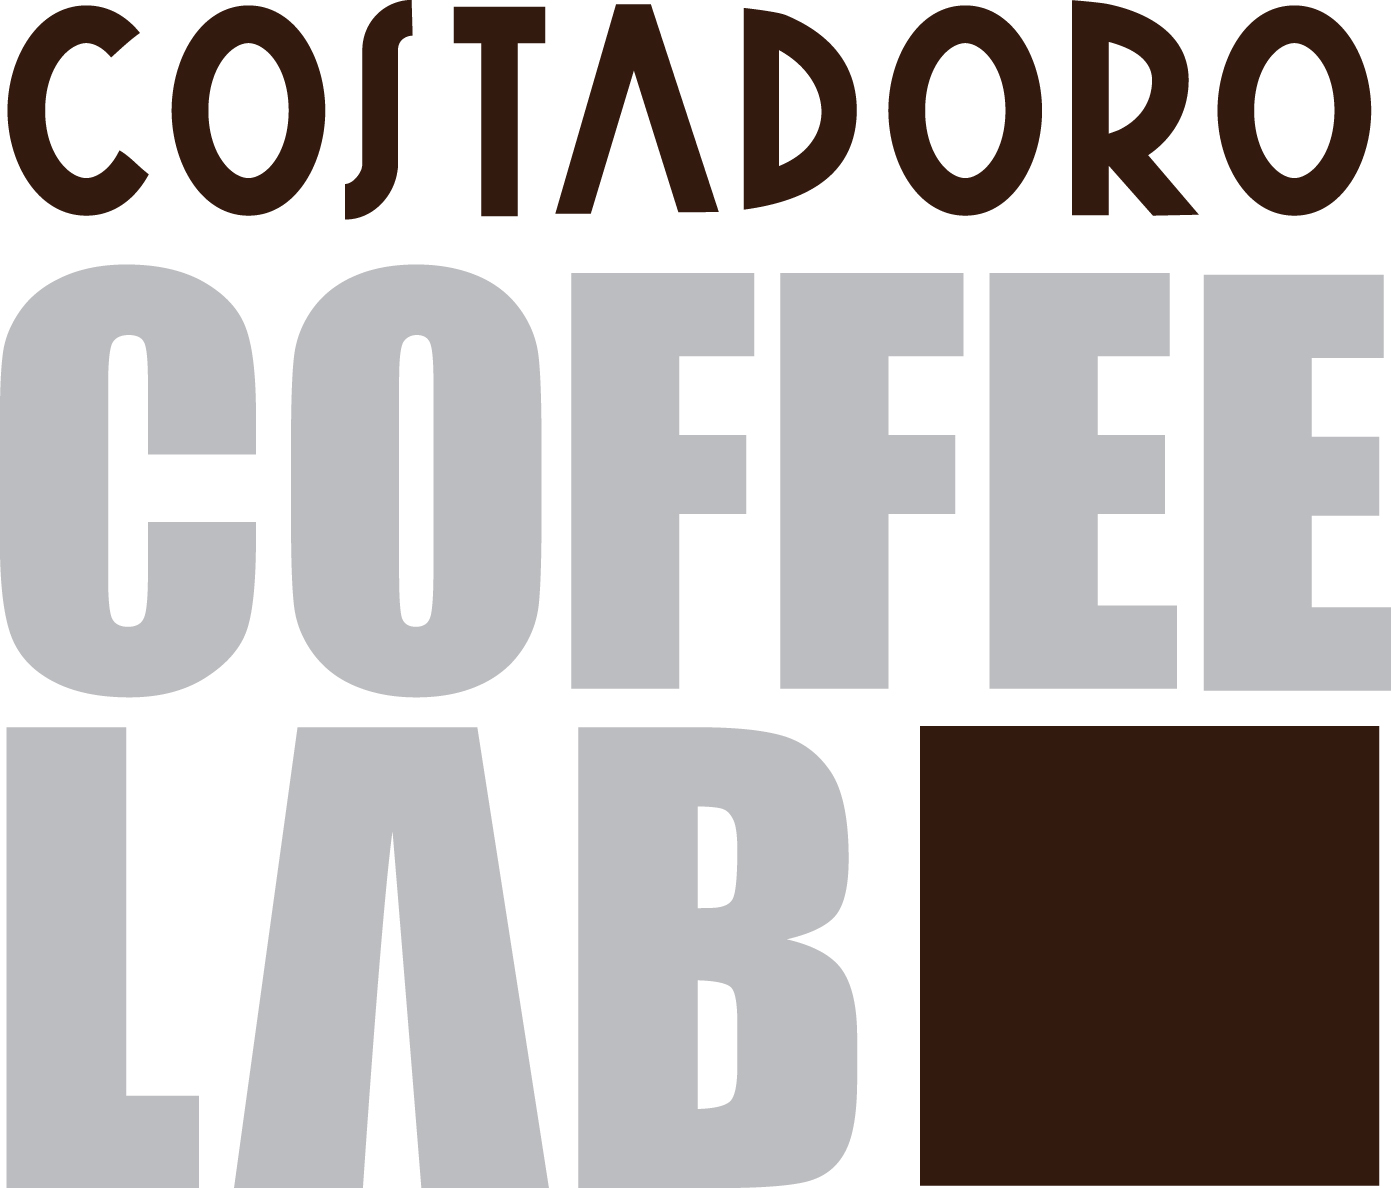 Costadoro Coffee Lab